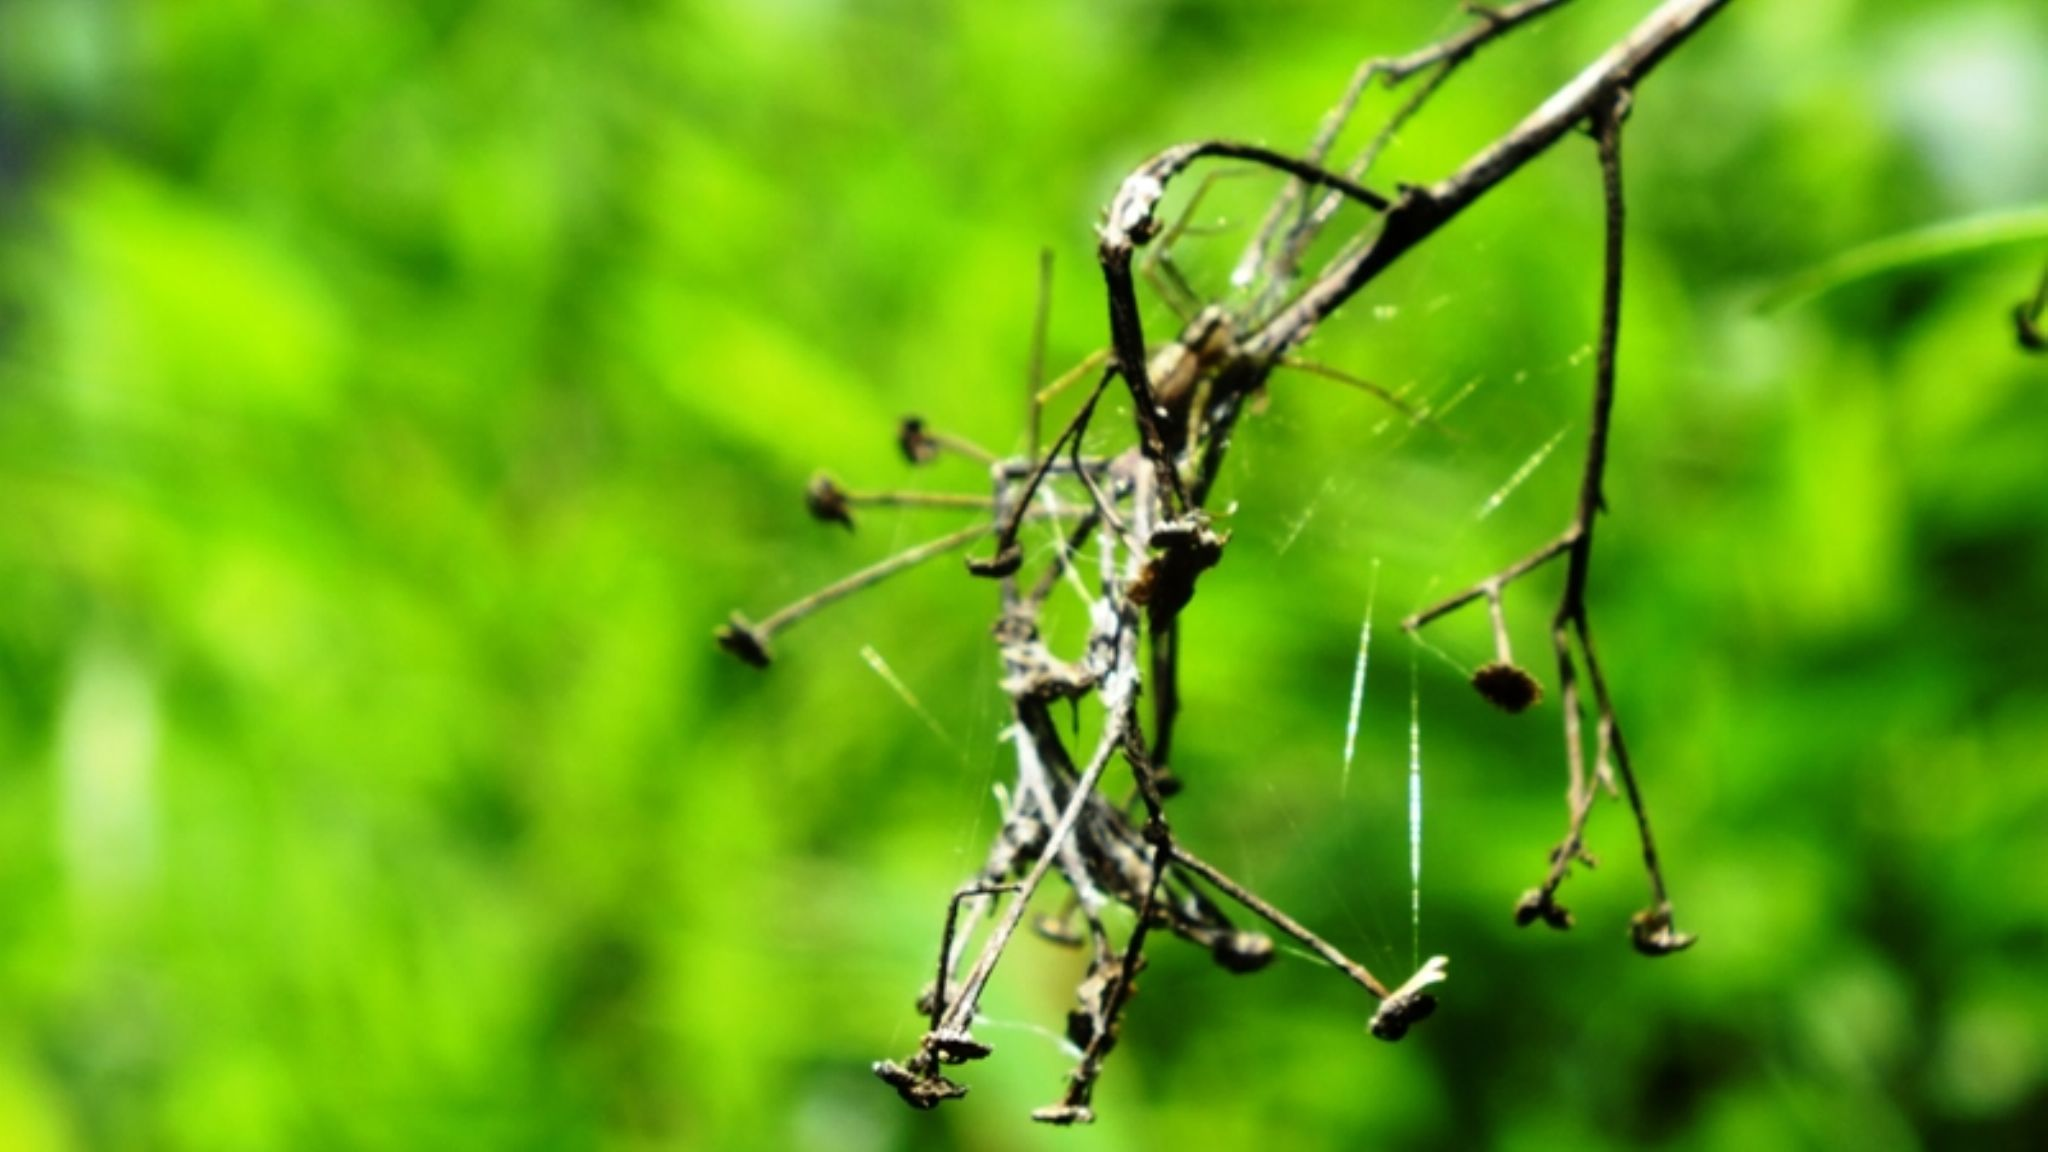 spider on a withered plant. by Jenin